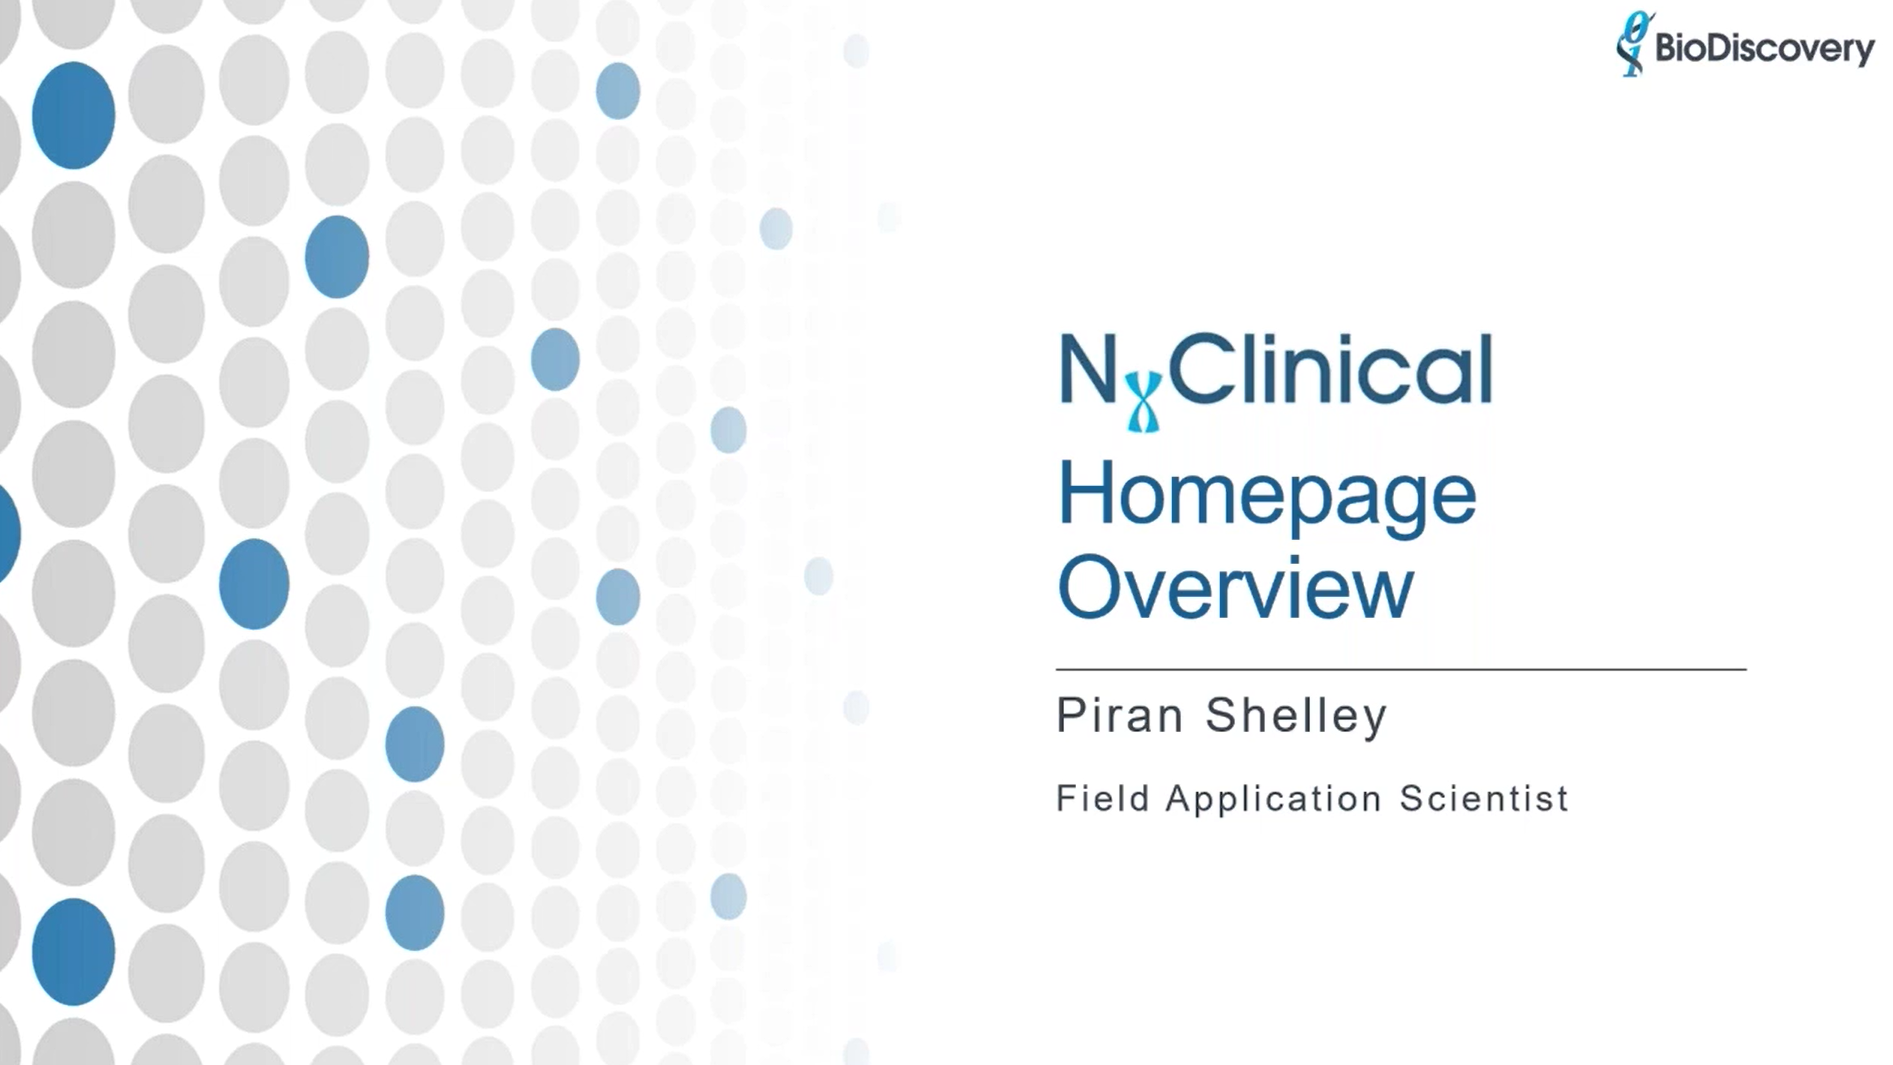 NxClinical Homepage Overview_Jan 21